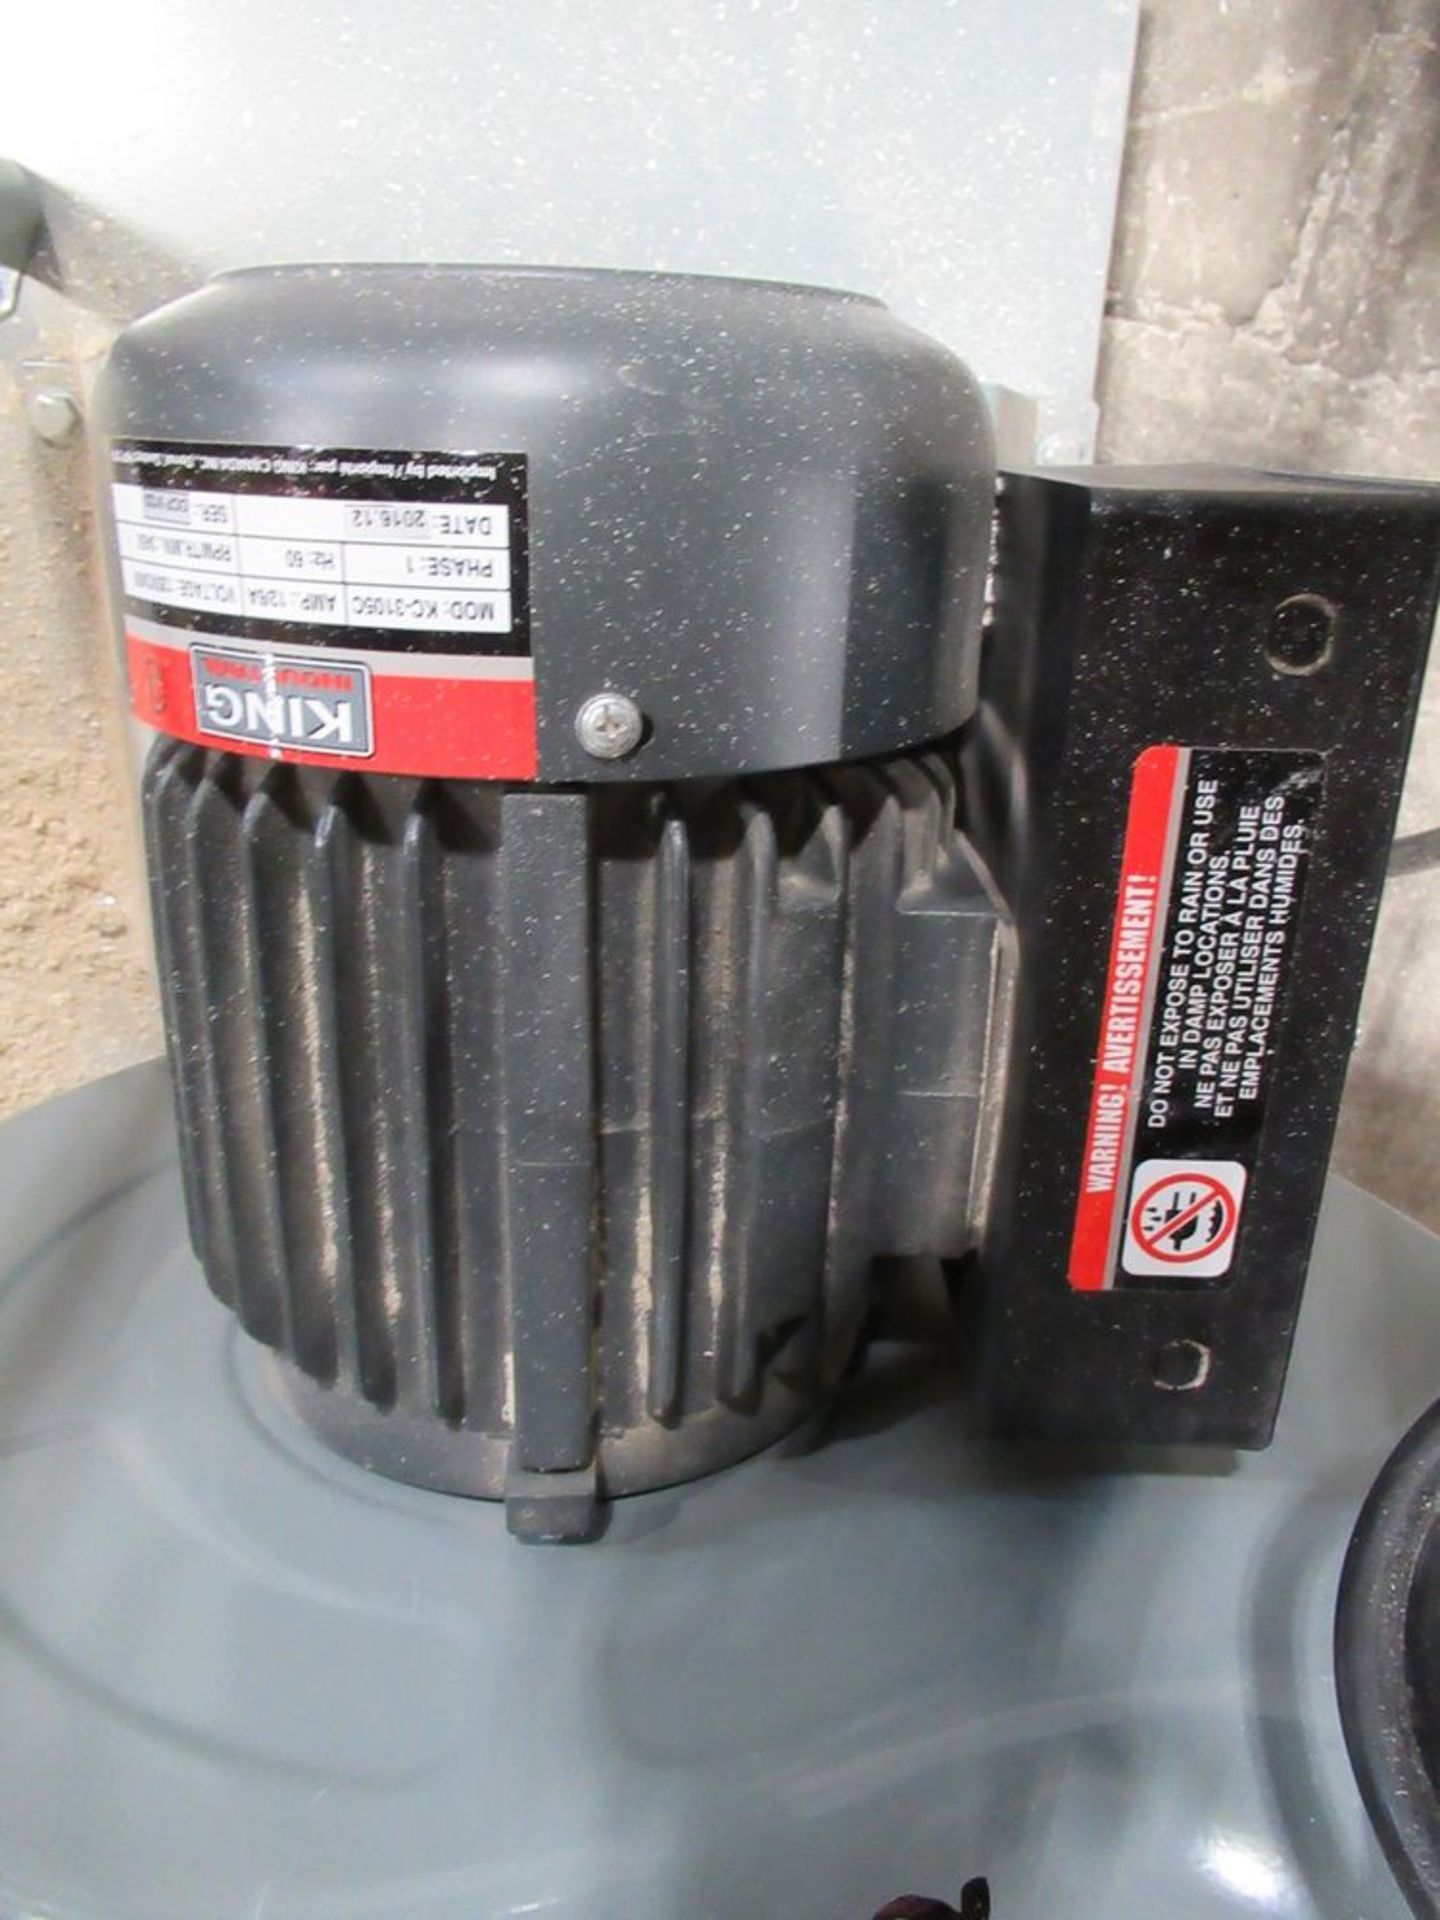 2017 KING INDUSTRIAL KC-3105C 1200 CFM 1.5HP APPROX. PORTABLE DUST COLLECTOR, S/N 17010100 - Image 4 of 4